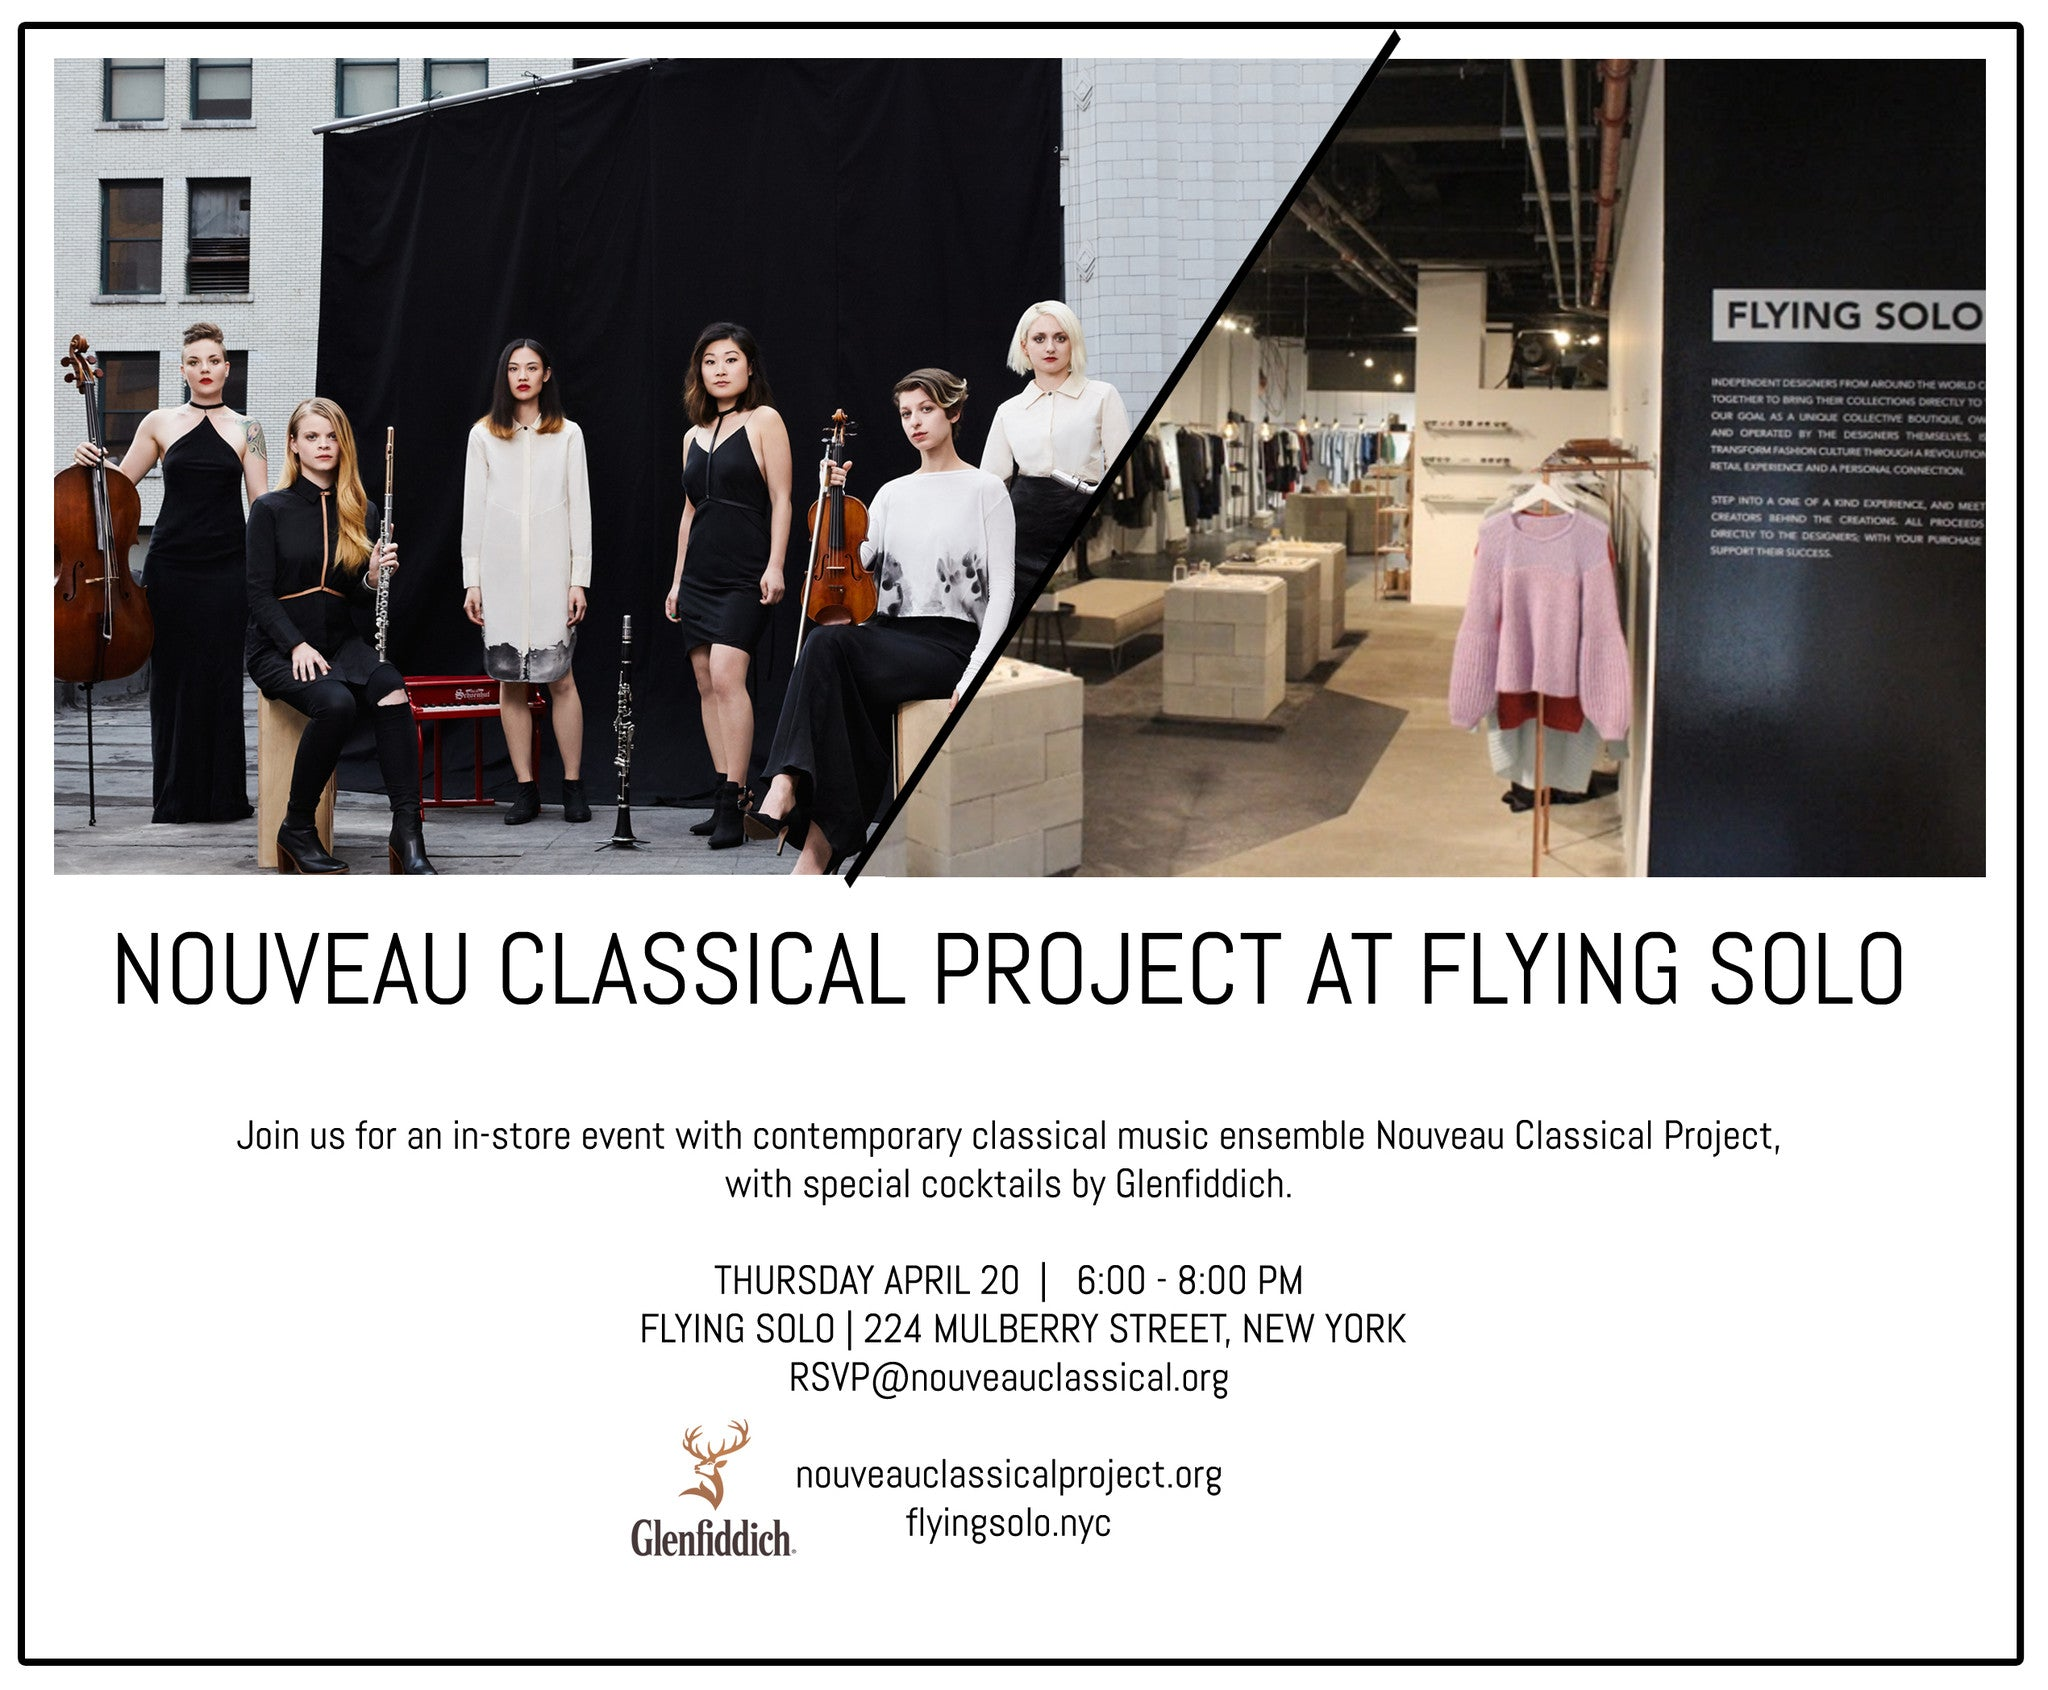 nouveau classical project at flying solo happy hour with glenfiddich